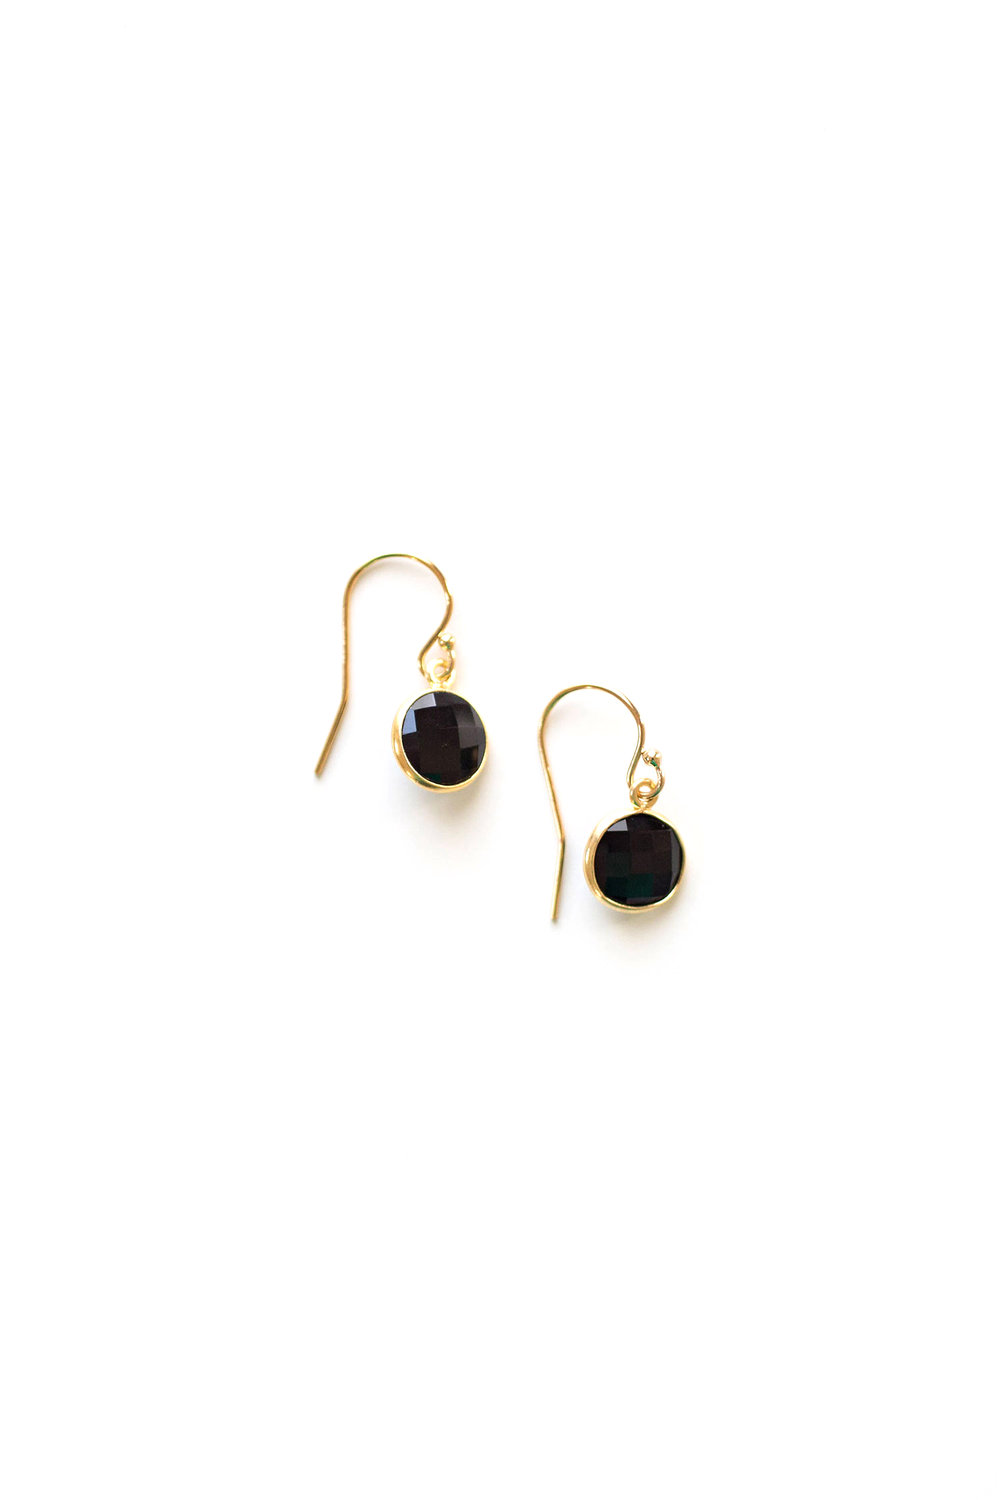 gem gold kill dolls earrings drop clear hidden asymmetrical